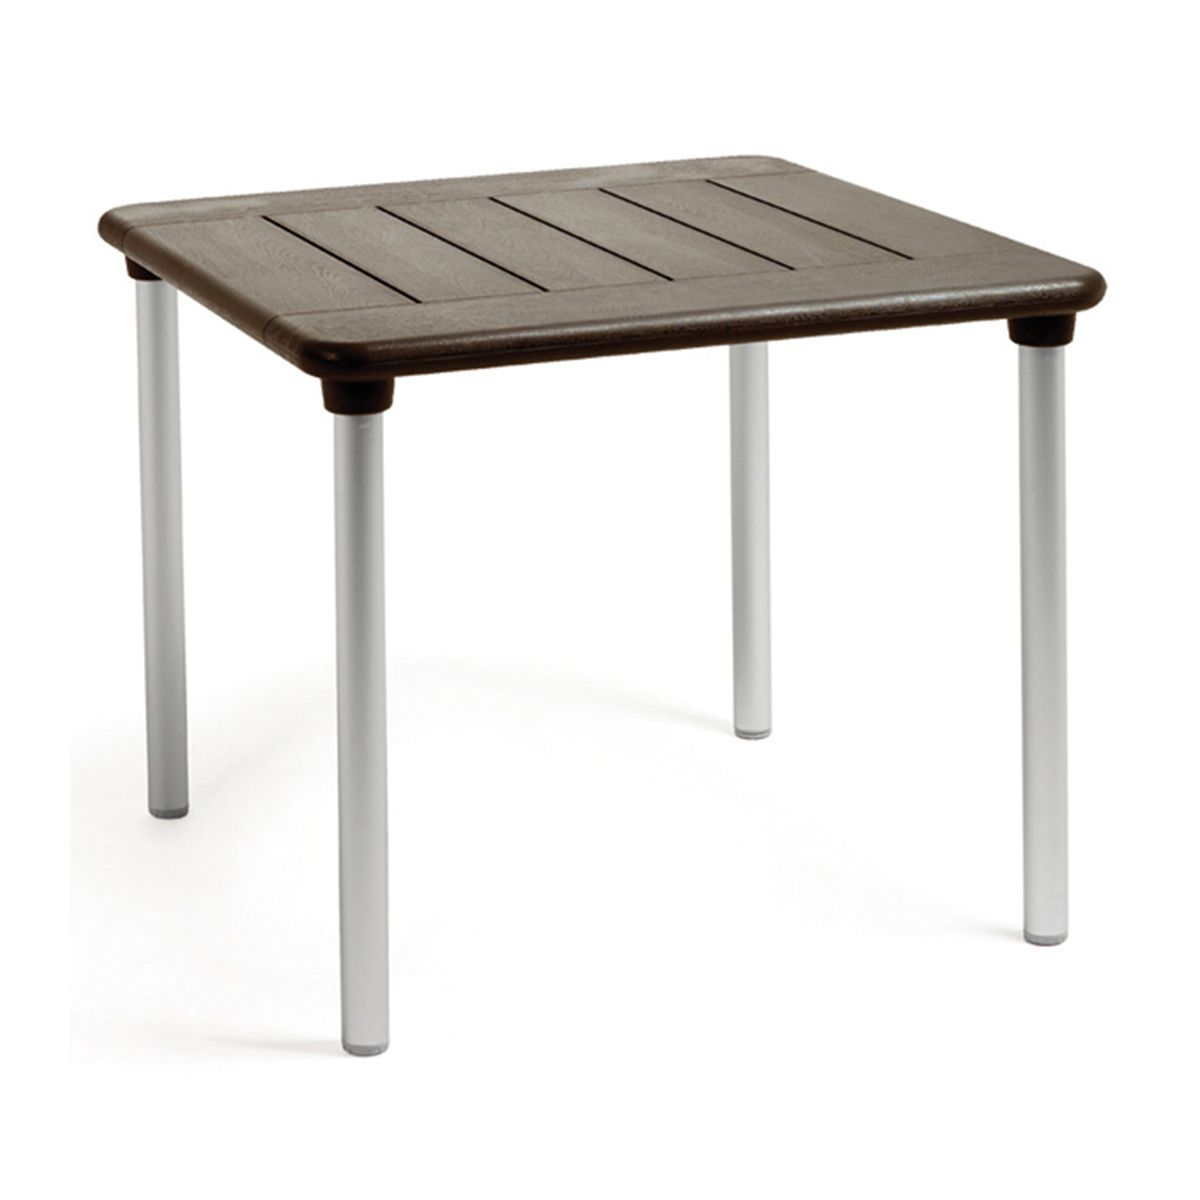 Table d appoint jardin terrasse maestrale nardi for Meuble de jardin nardi